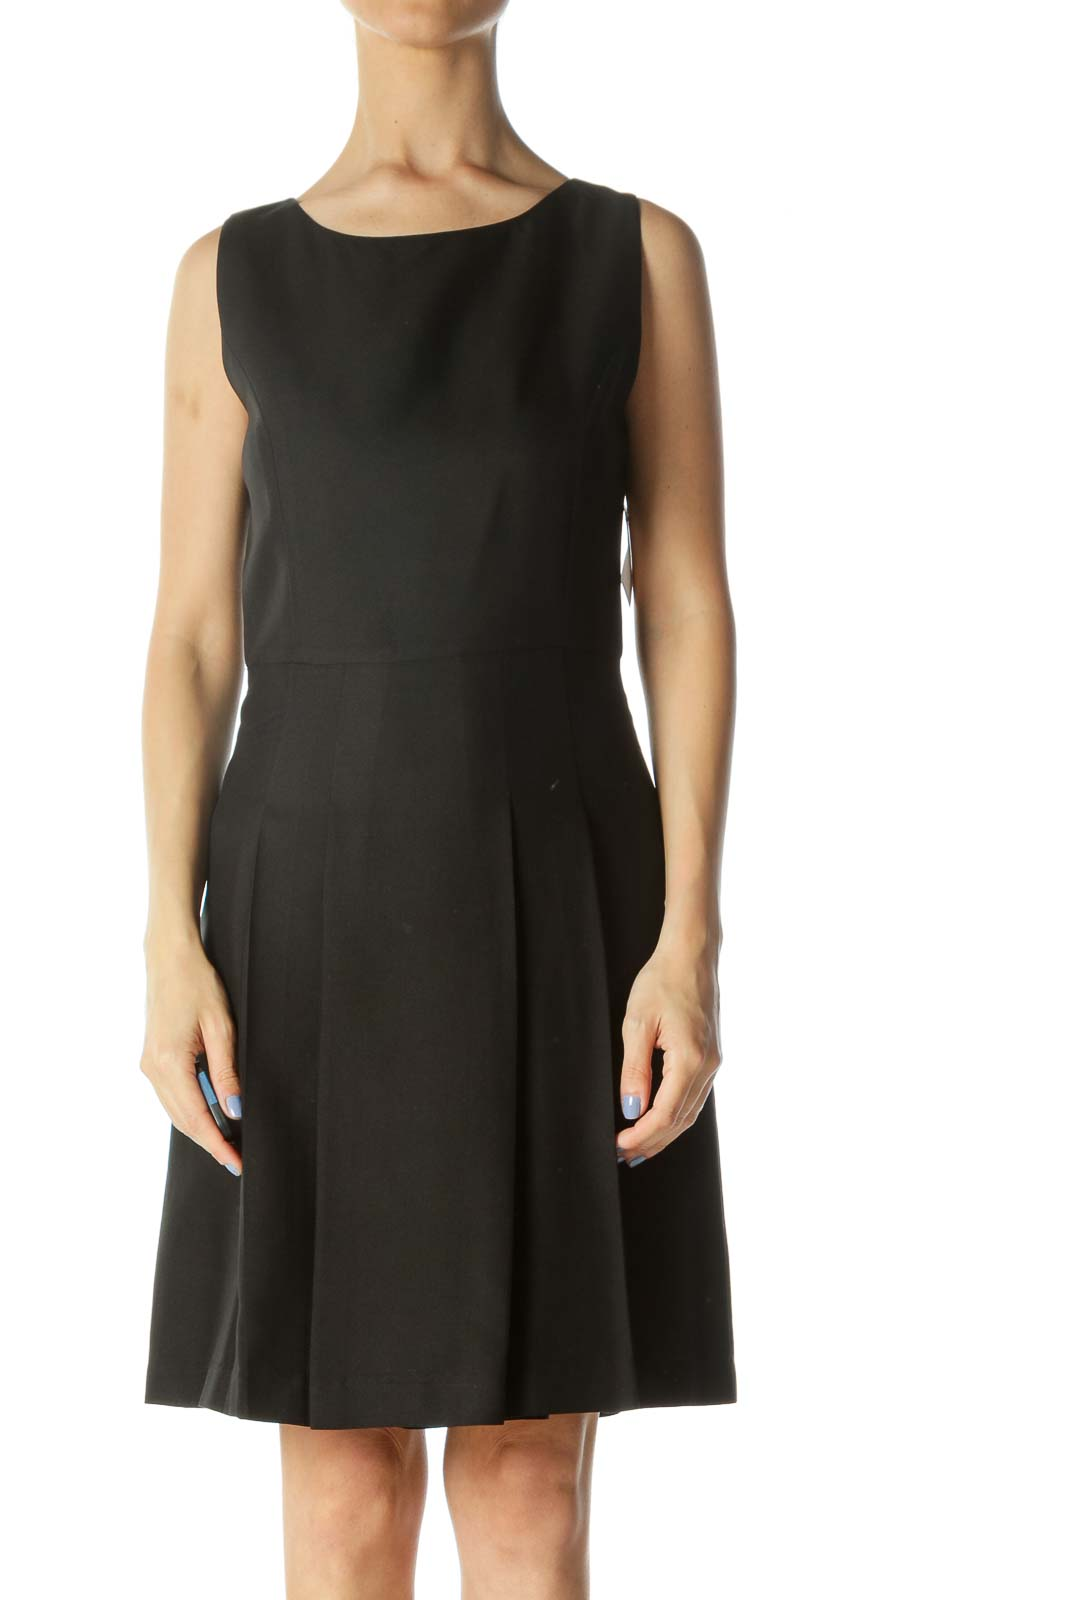 Black Round-Neck Pleated-Skirt A-Line Dress Front